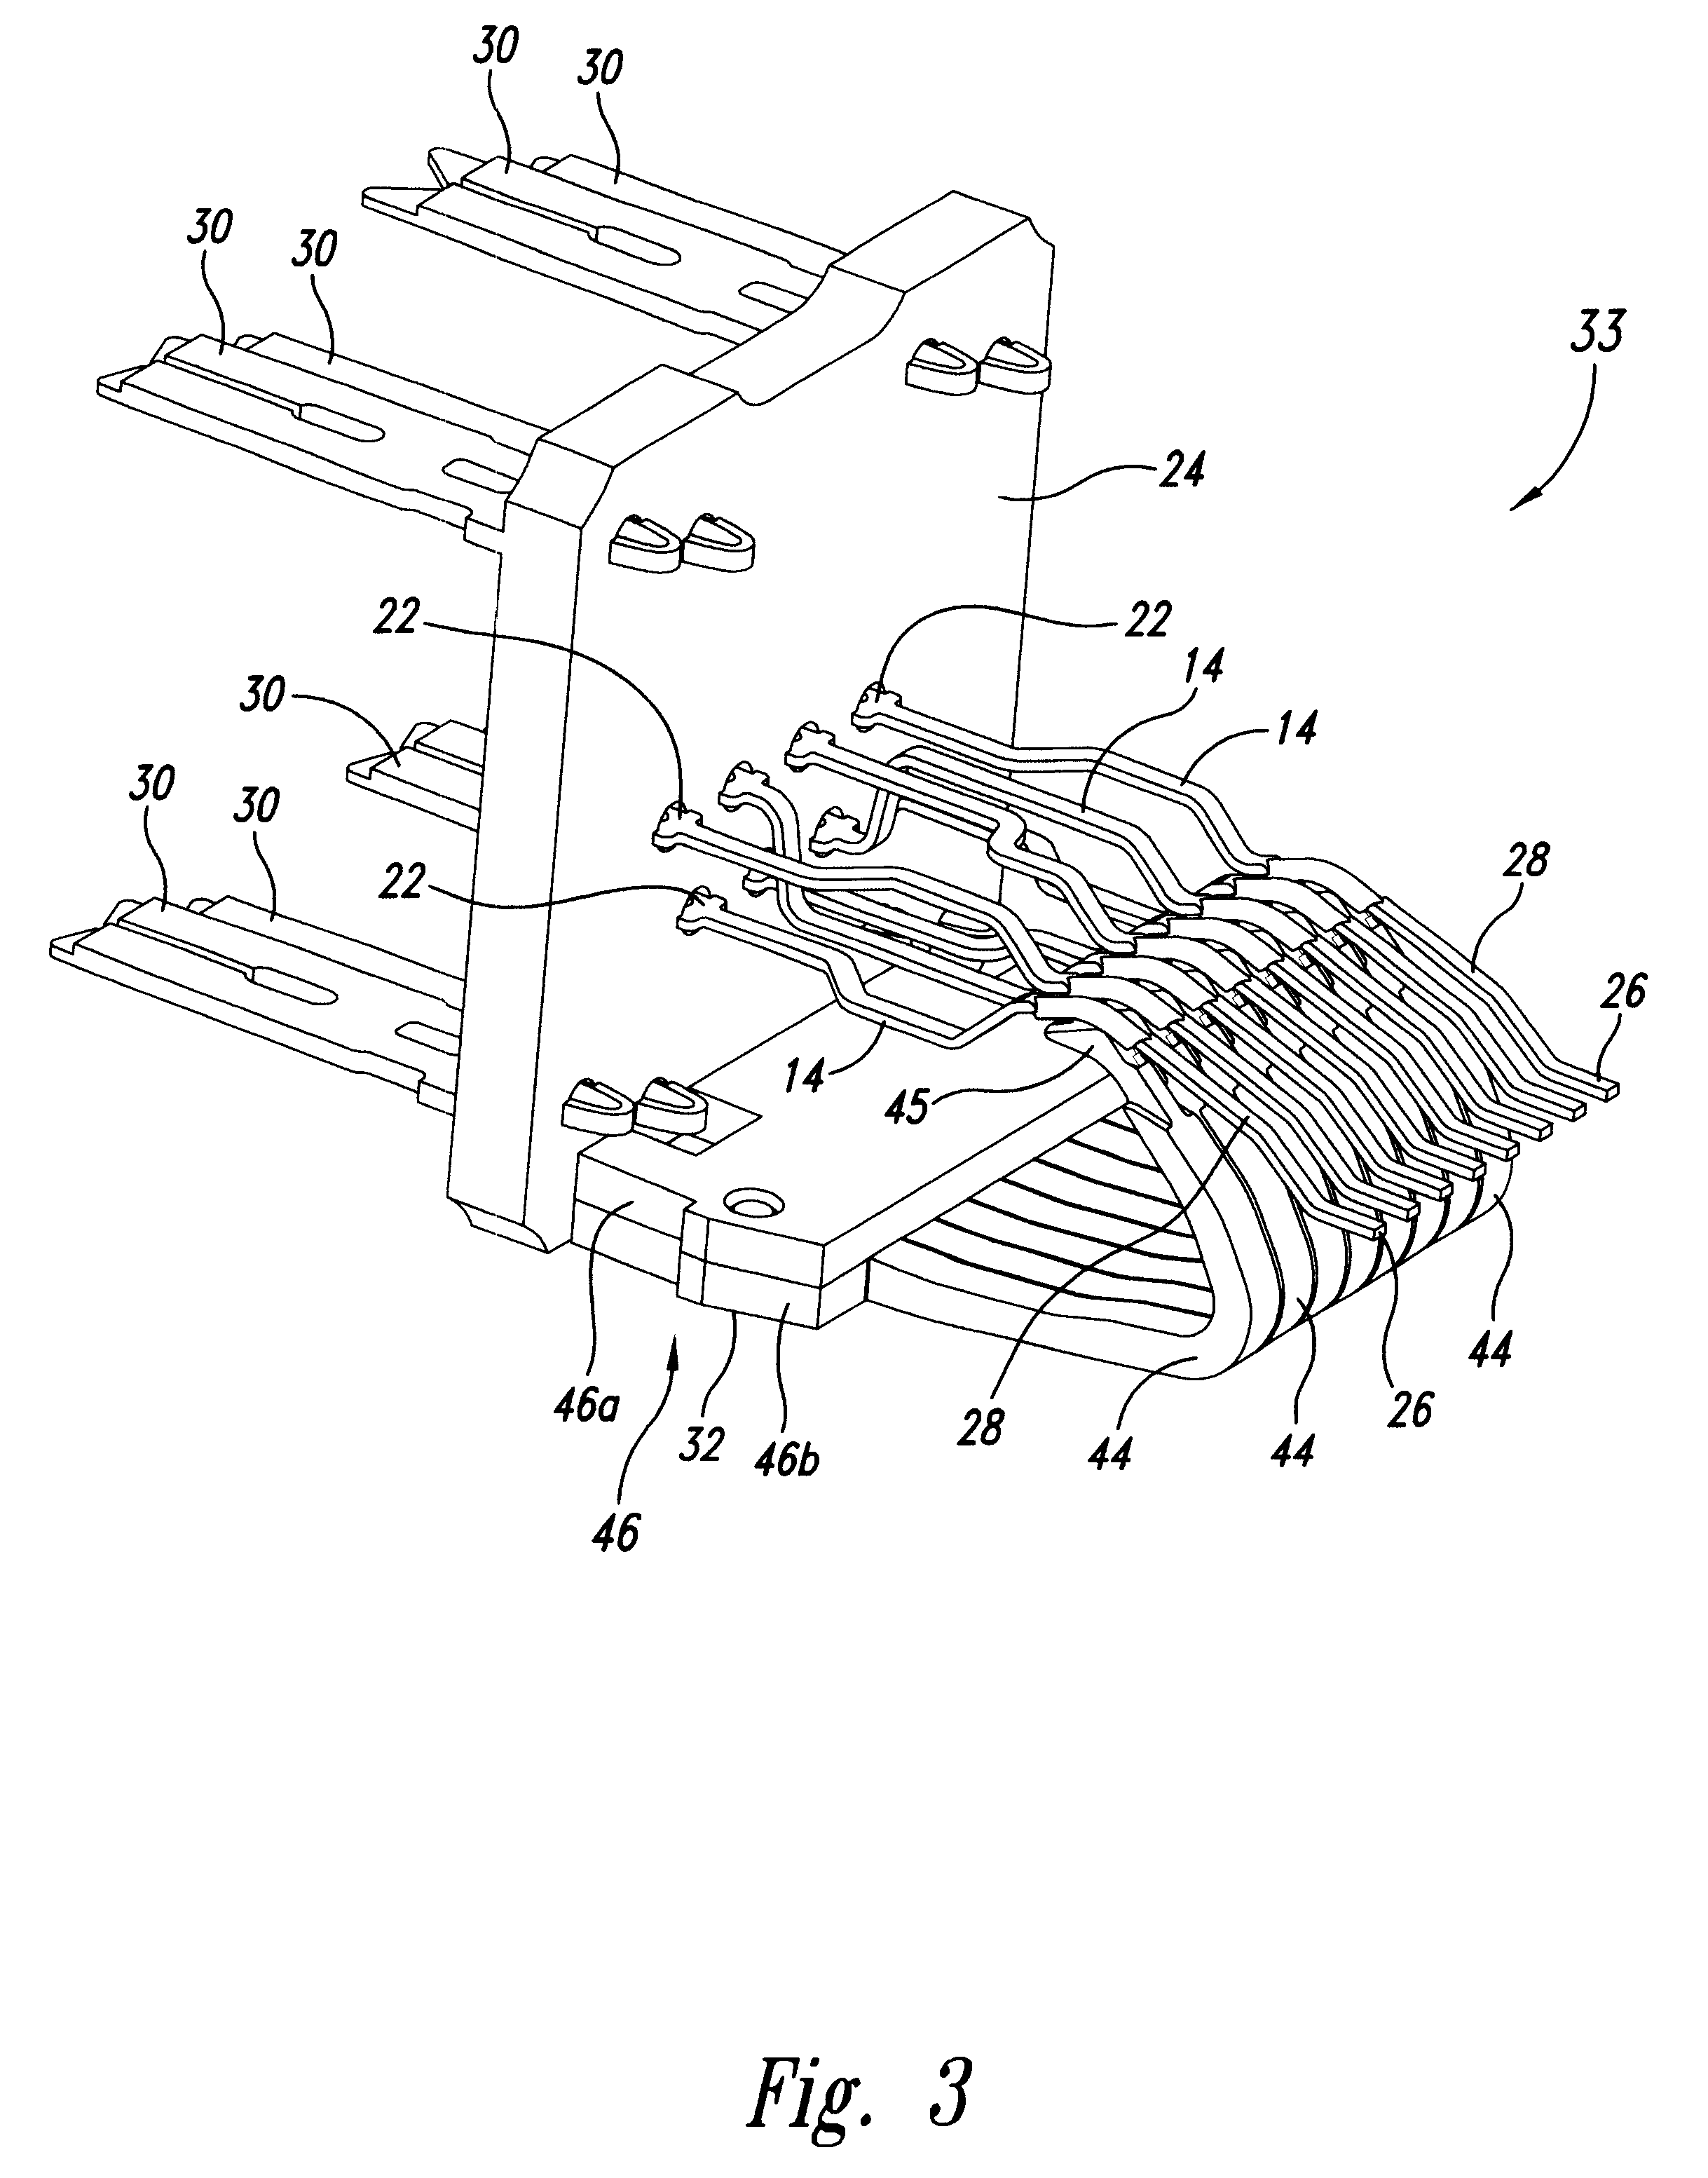 patent us6641443 electrical connector jack patents Leviton RJ45 10 Pack Jack patent drawing